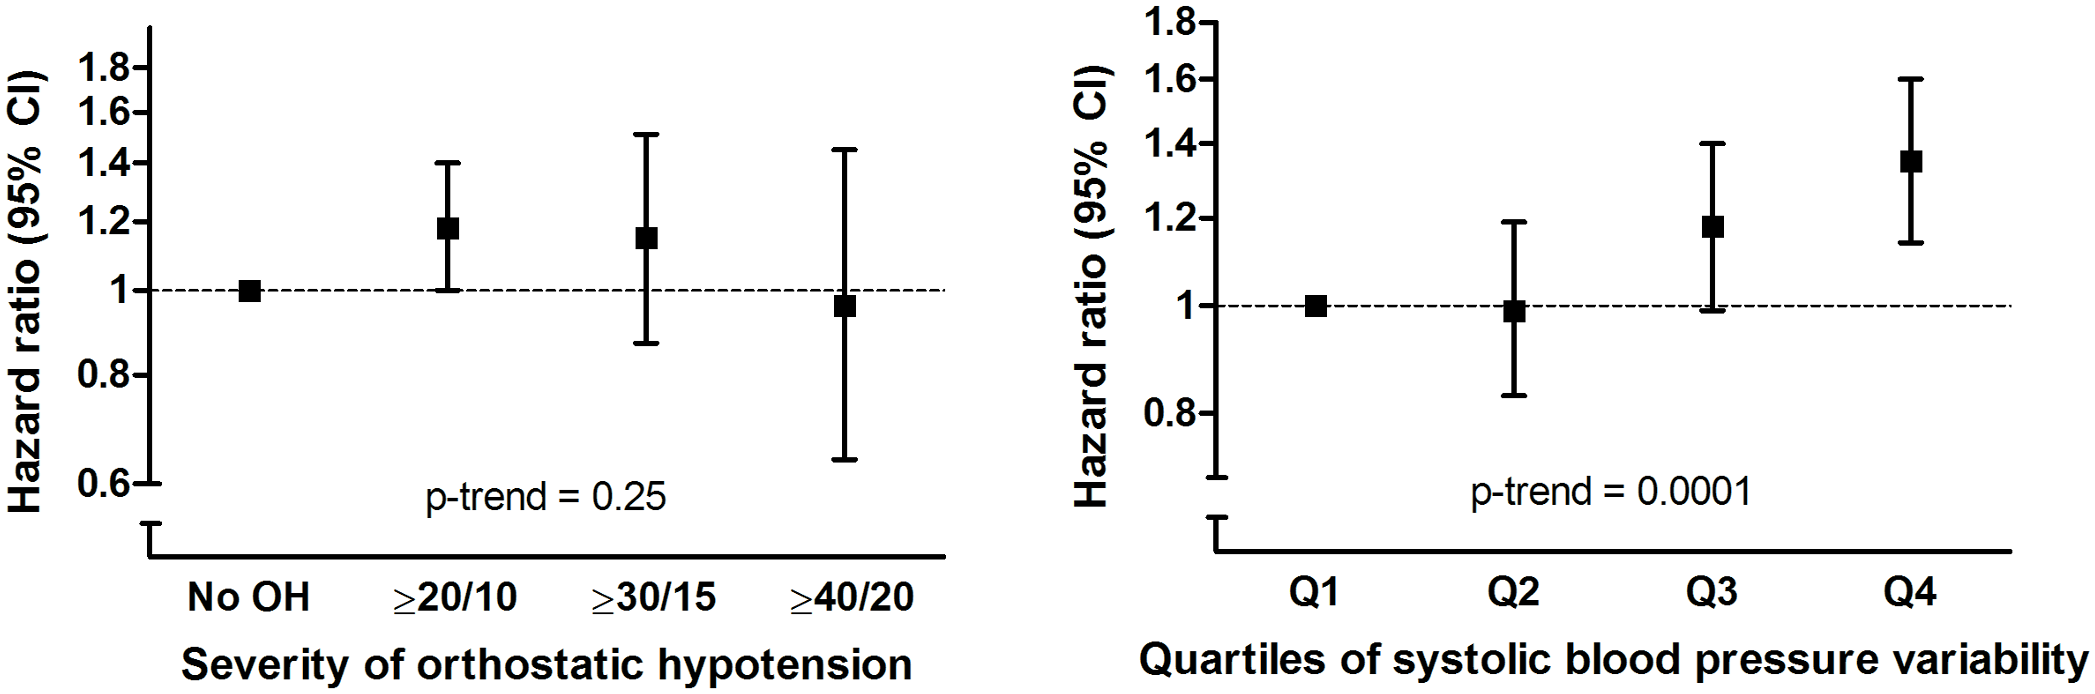 Risk of dementia in relation to severity of orthostatic blood pressure drop (in mm Hg) and quartiles of systolic blood pressure variability.